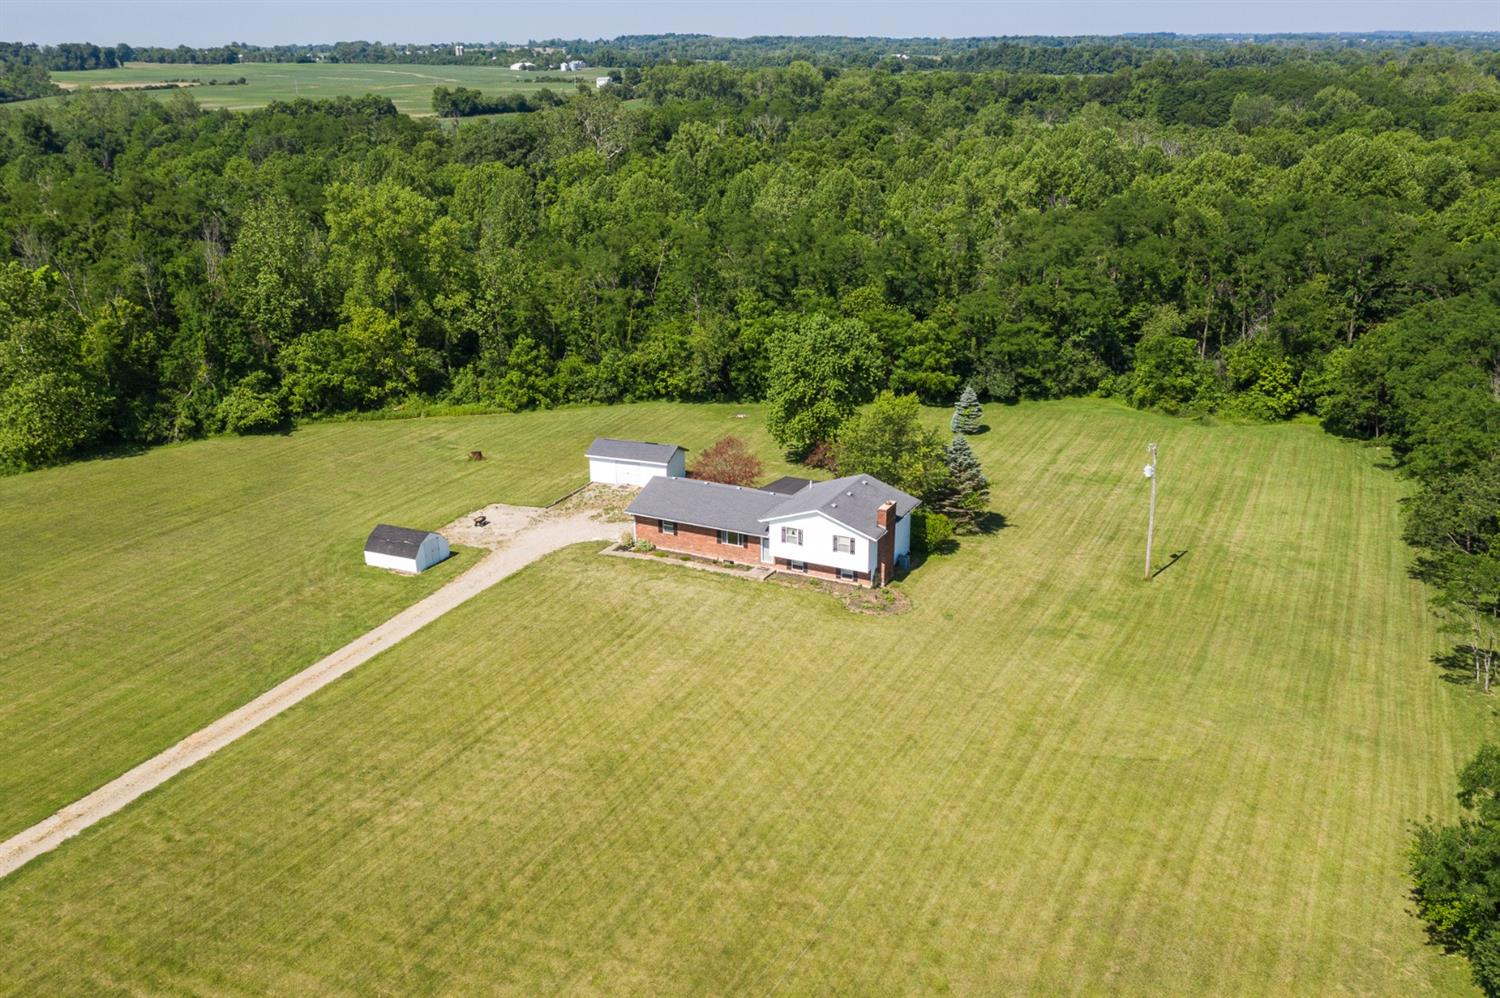 78 acres of beauty! 34 tillable acres, wonderful wooded area and great house and yard.  Newer roof and heat pump. Study could be used as a 4th bedroom. Tillable acres are under current tenant rights for 2020.